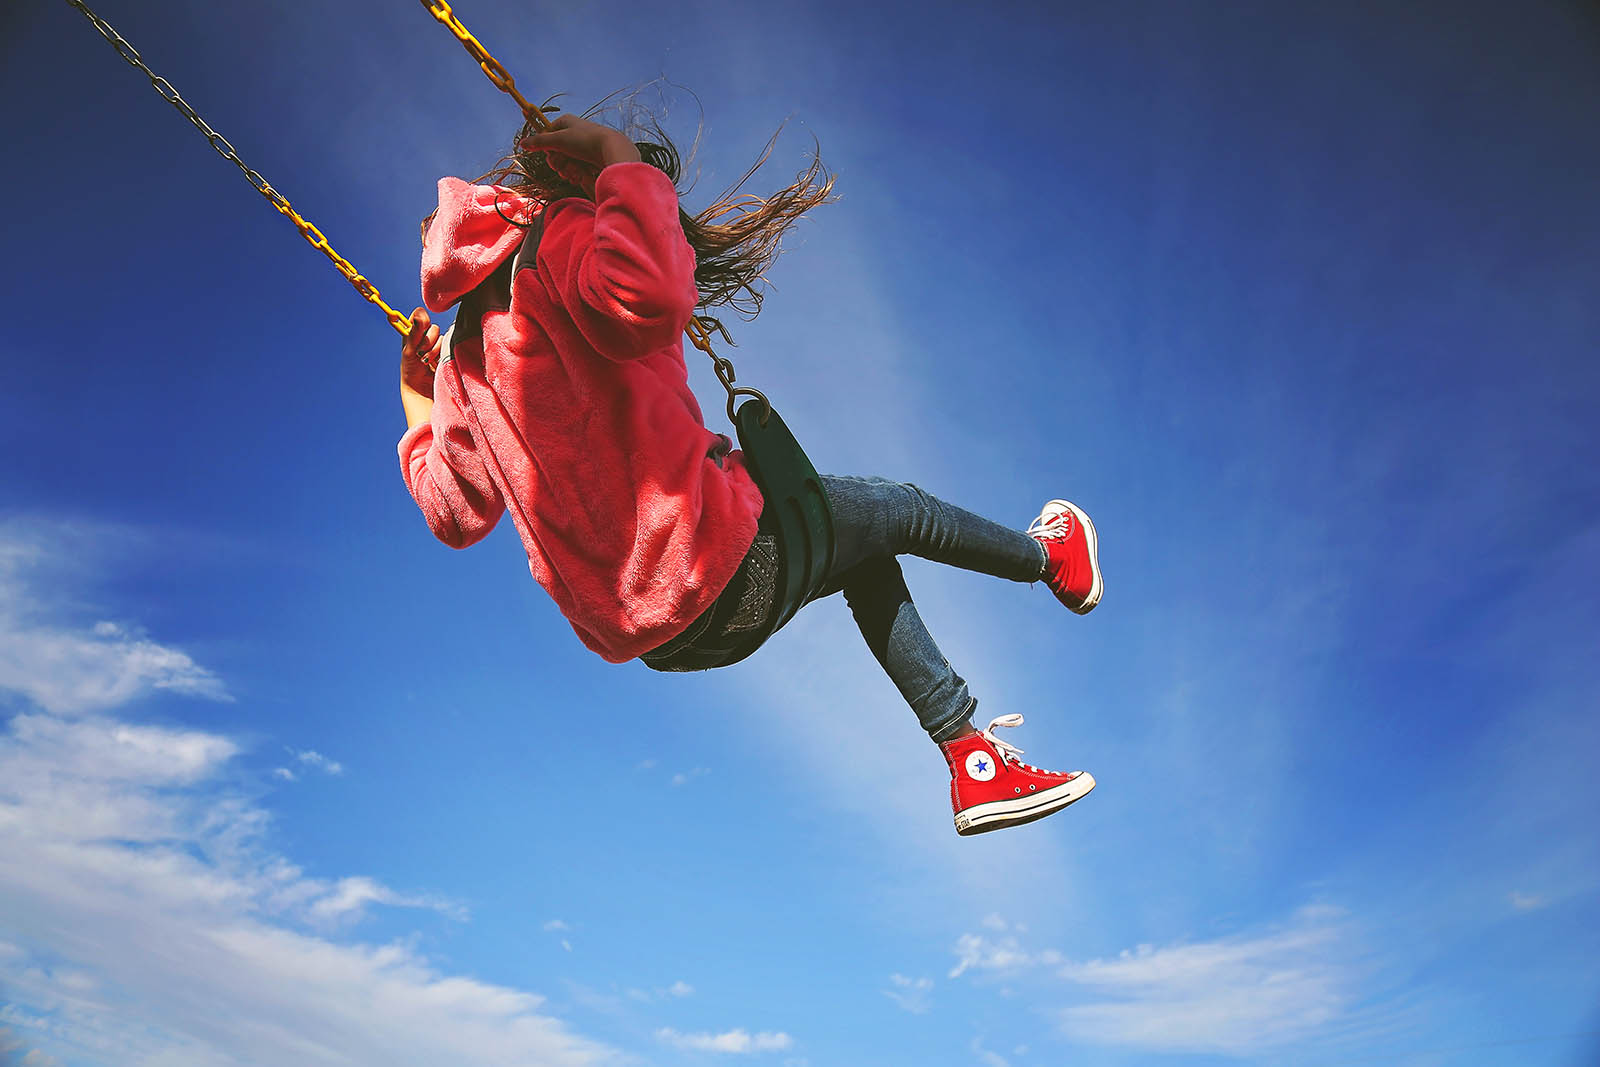 photo of girl in a red sweatshirt swinging by Michelle Stoddard